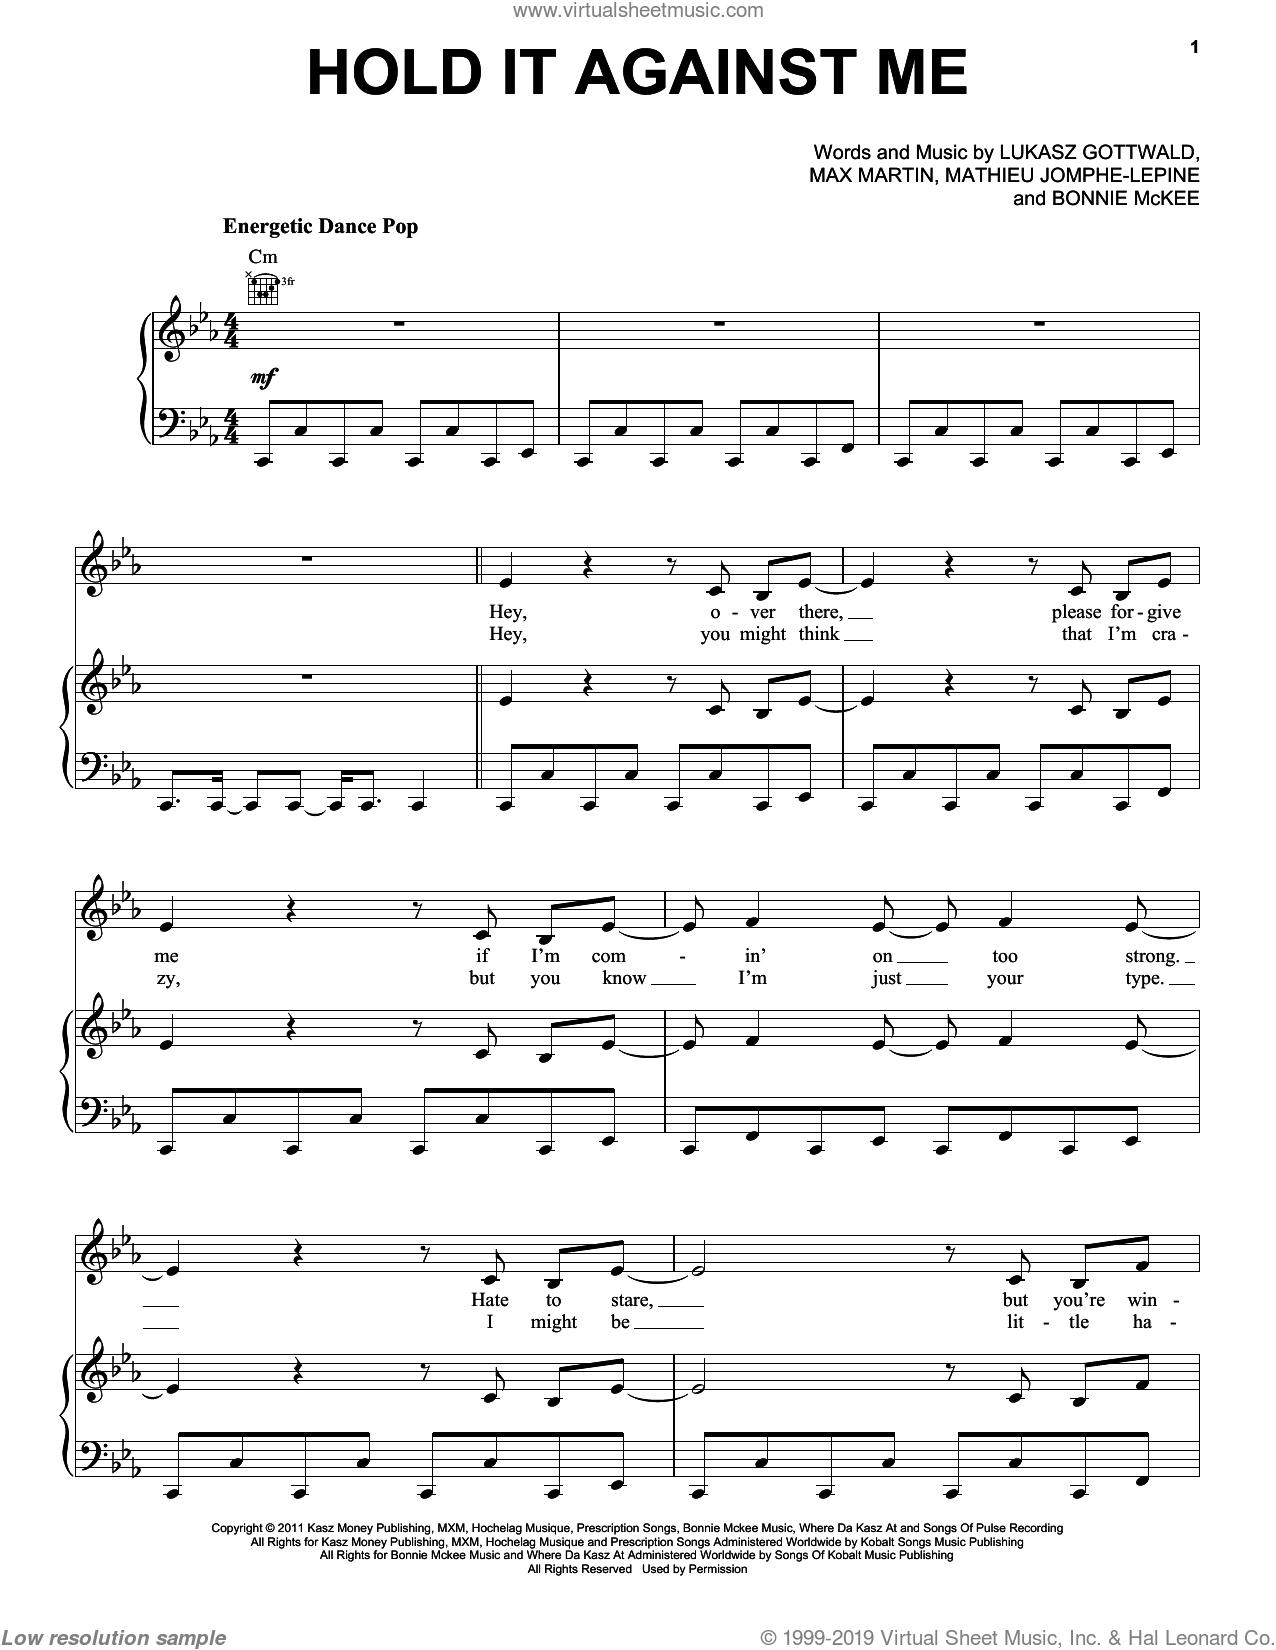 Hold It Against Me sheet music for voice, piano or guitar by Max Martin